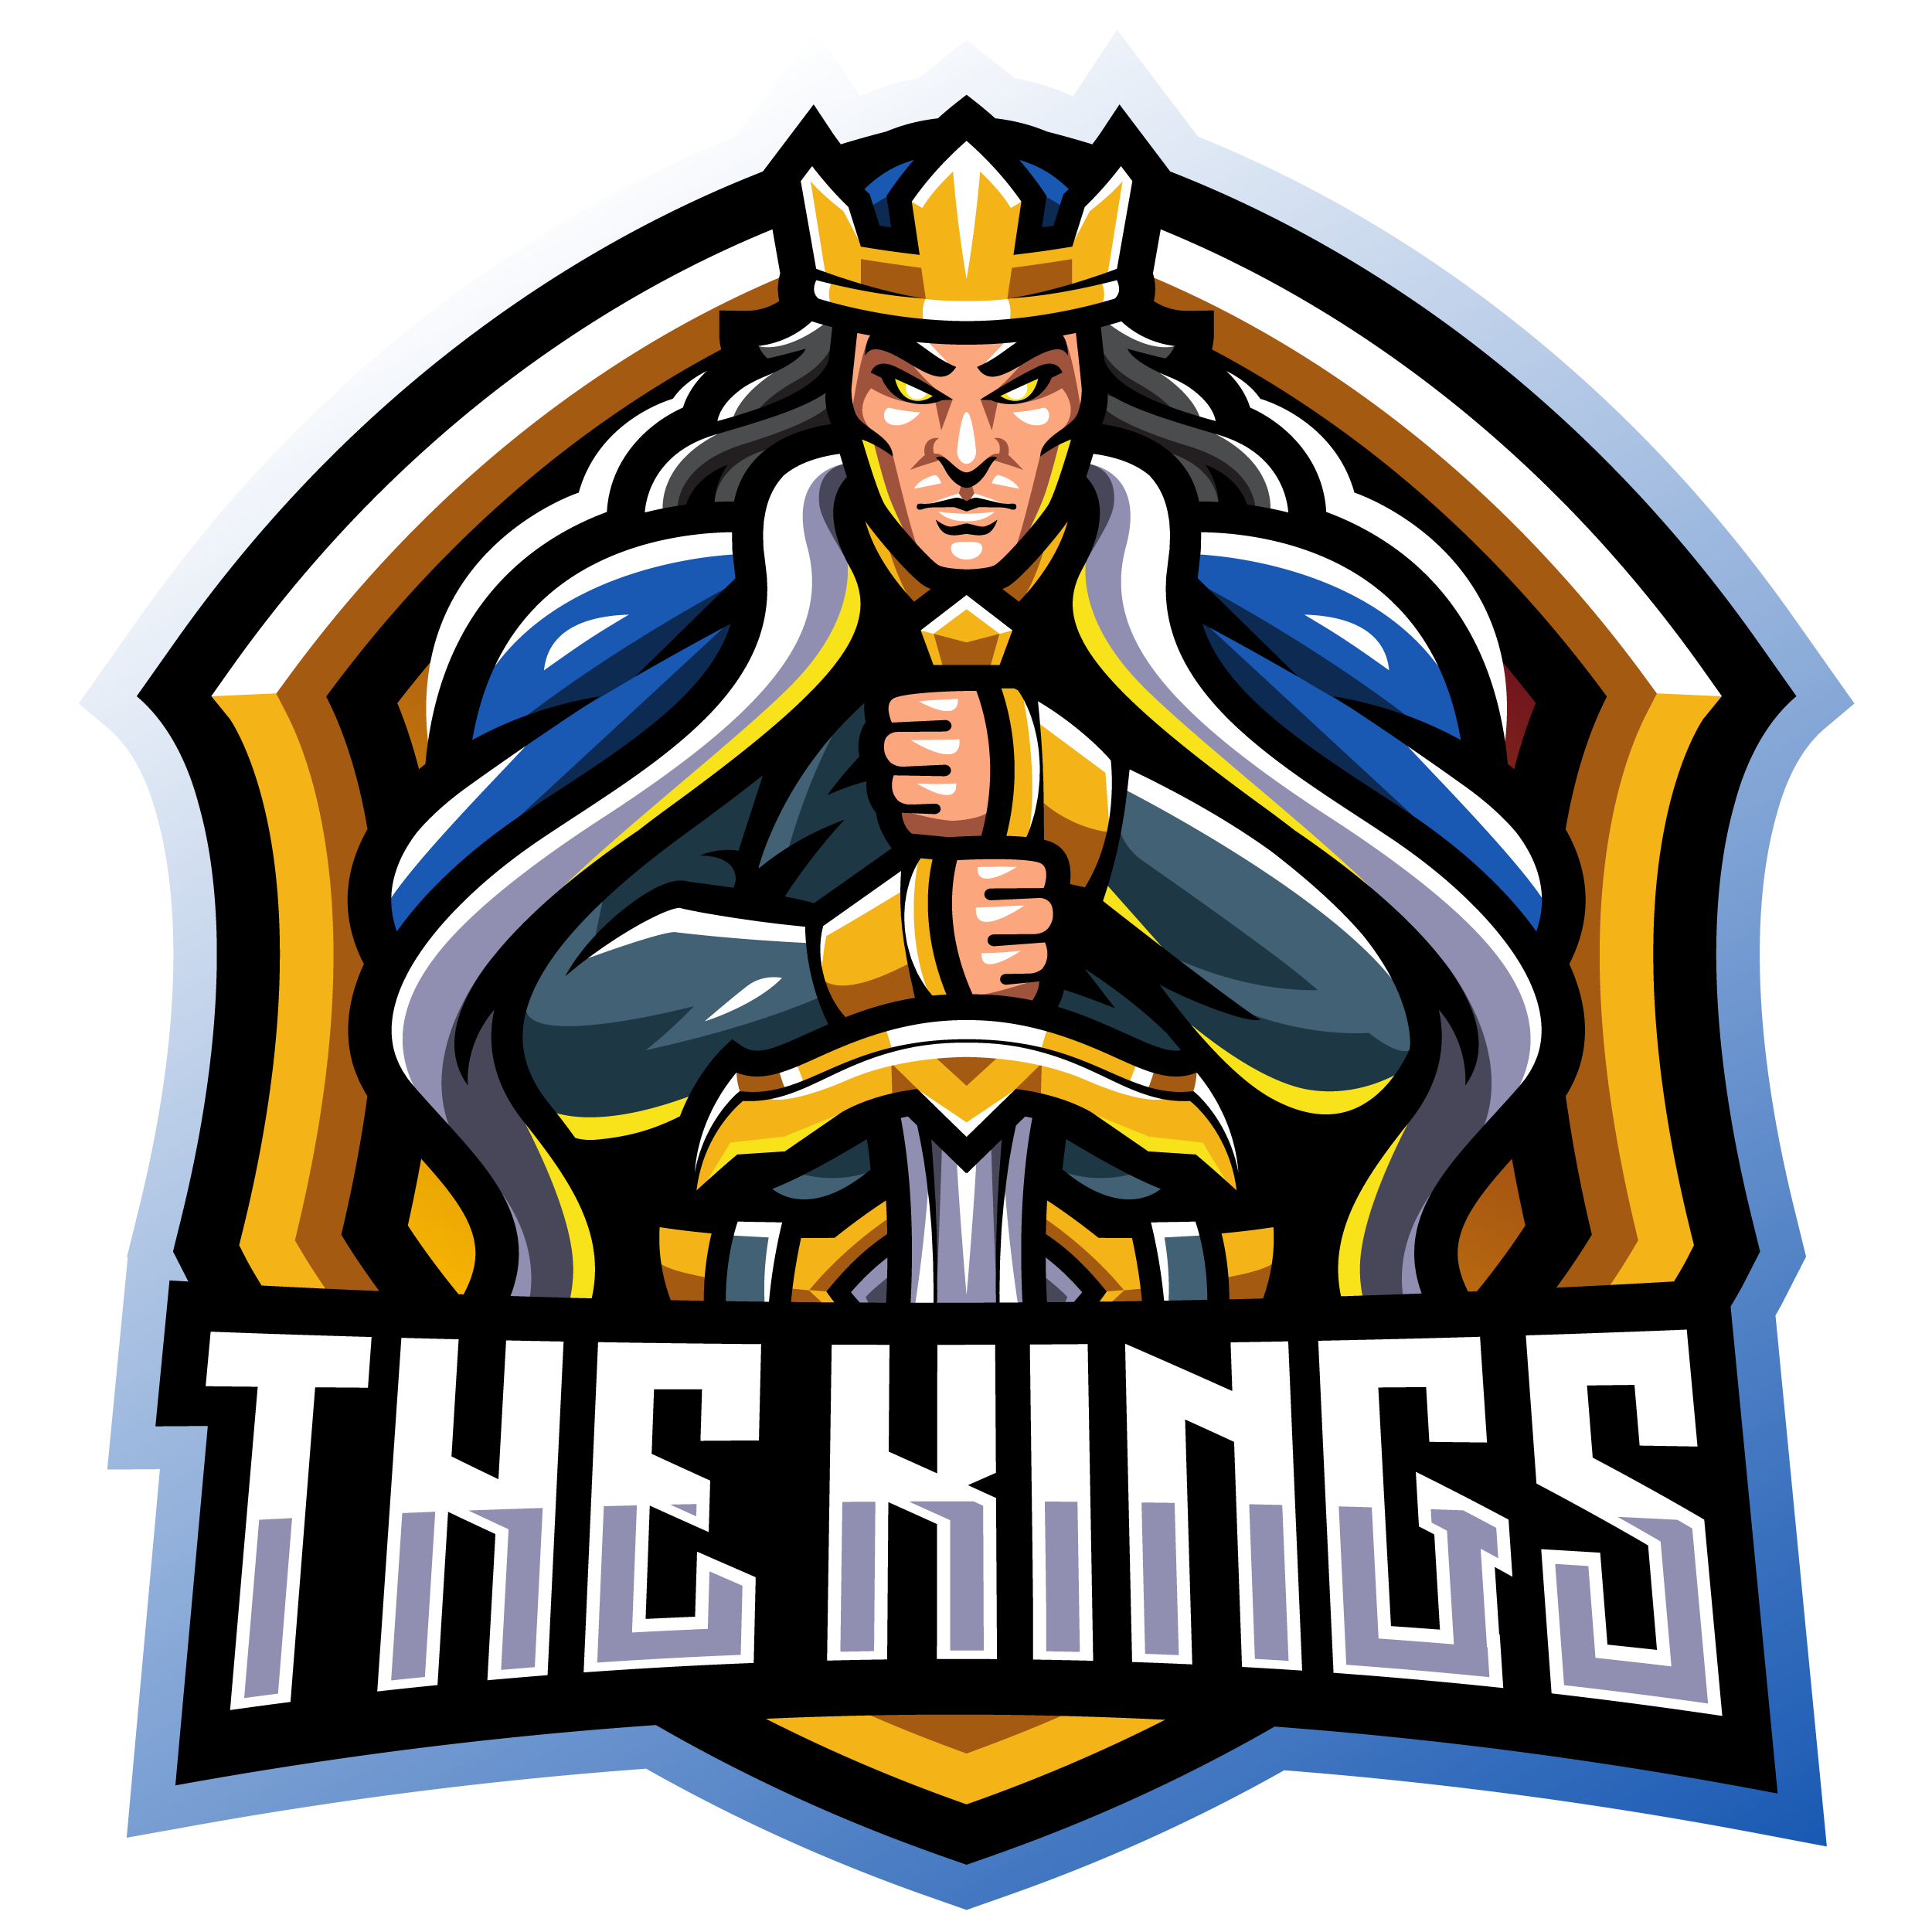 The-Kings-Mascot-Logo-PNG-Transparent